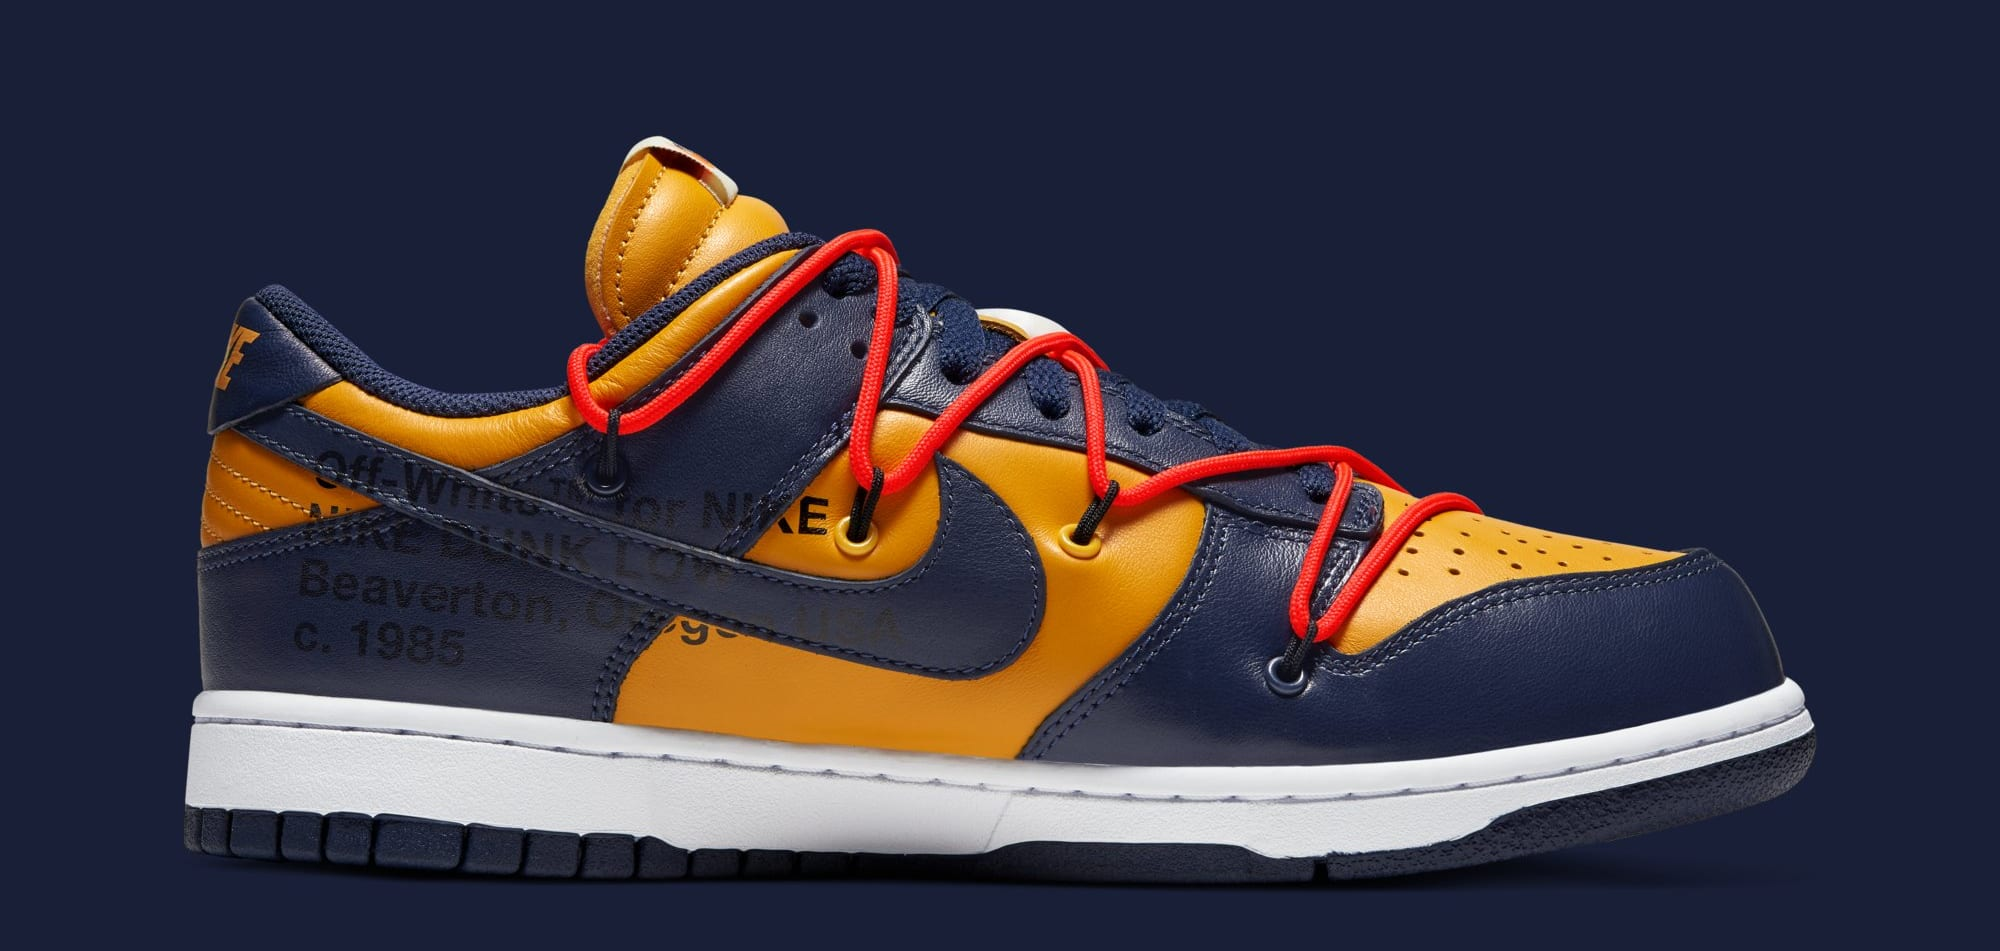 Off-White x Nike Dunk Low 'University Gold/White/Midnight Navy' CT0856-700 (Medial)